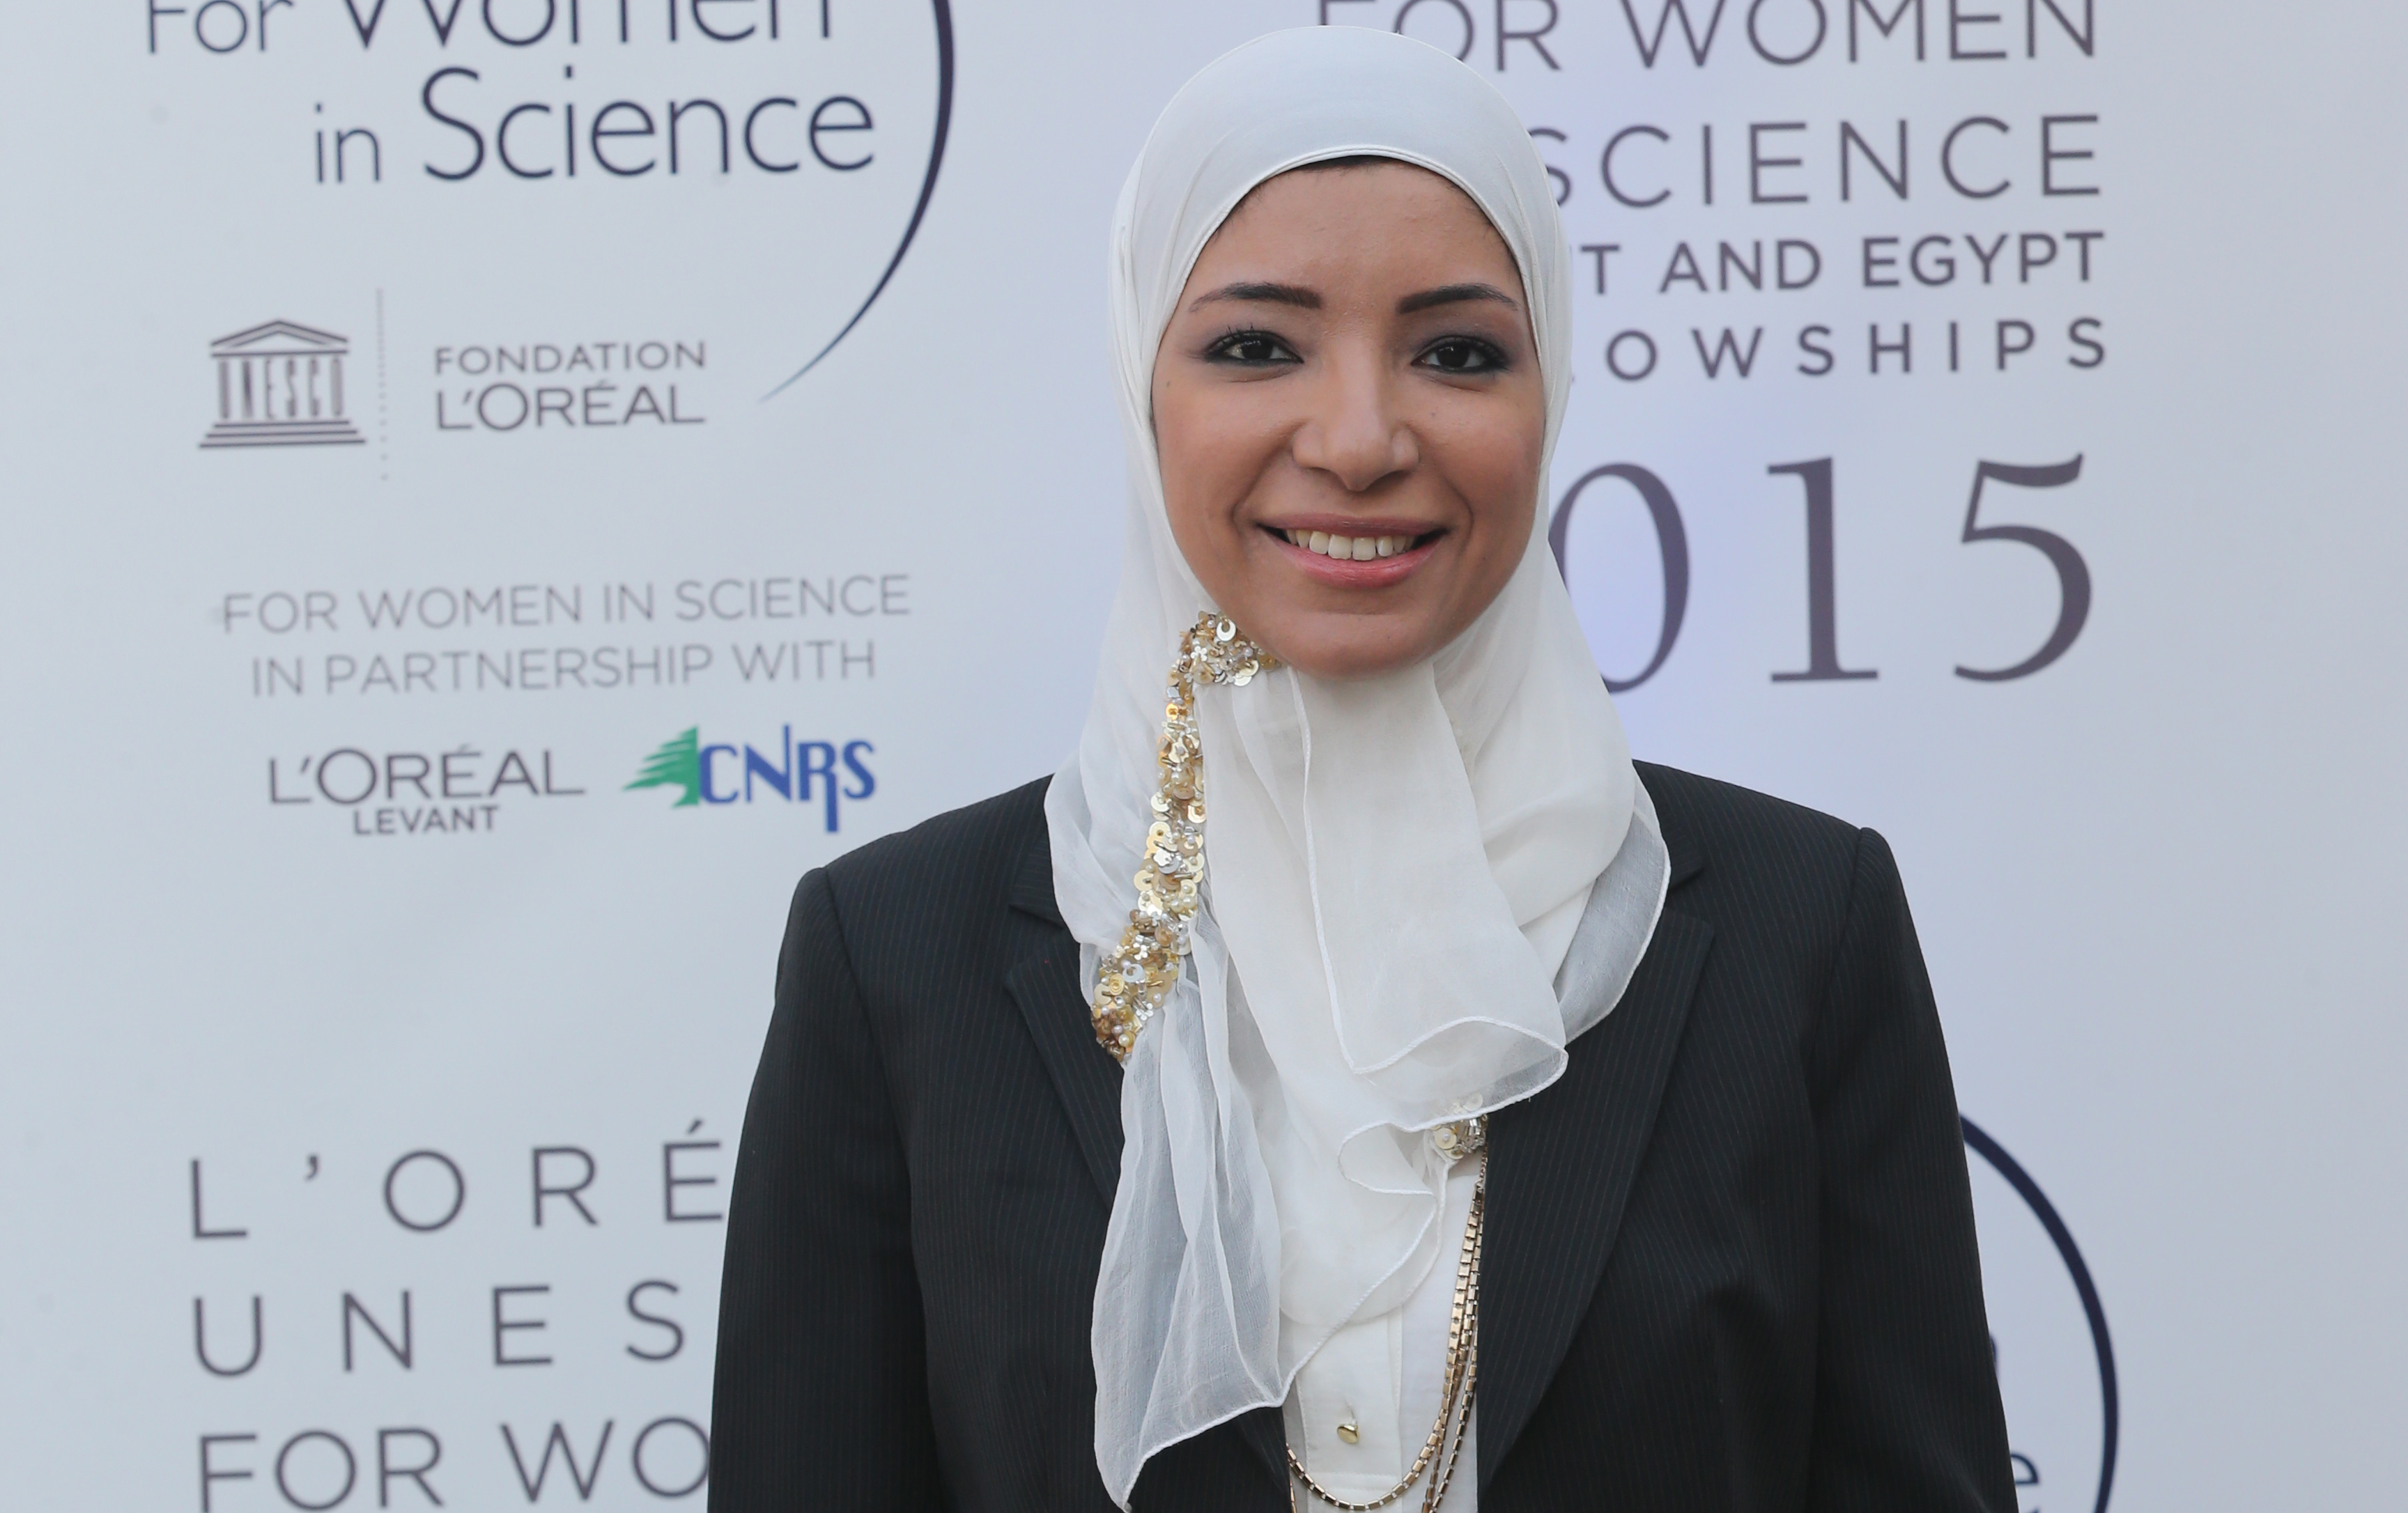 LOreal Egypt Is Proud To Announce Egyptian Scientist And Researcher Dr Nashwa El Bendary Winner Of The Regional UNESCO For Women In Science